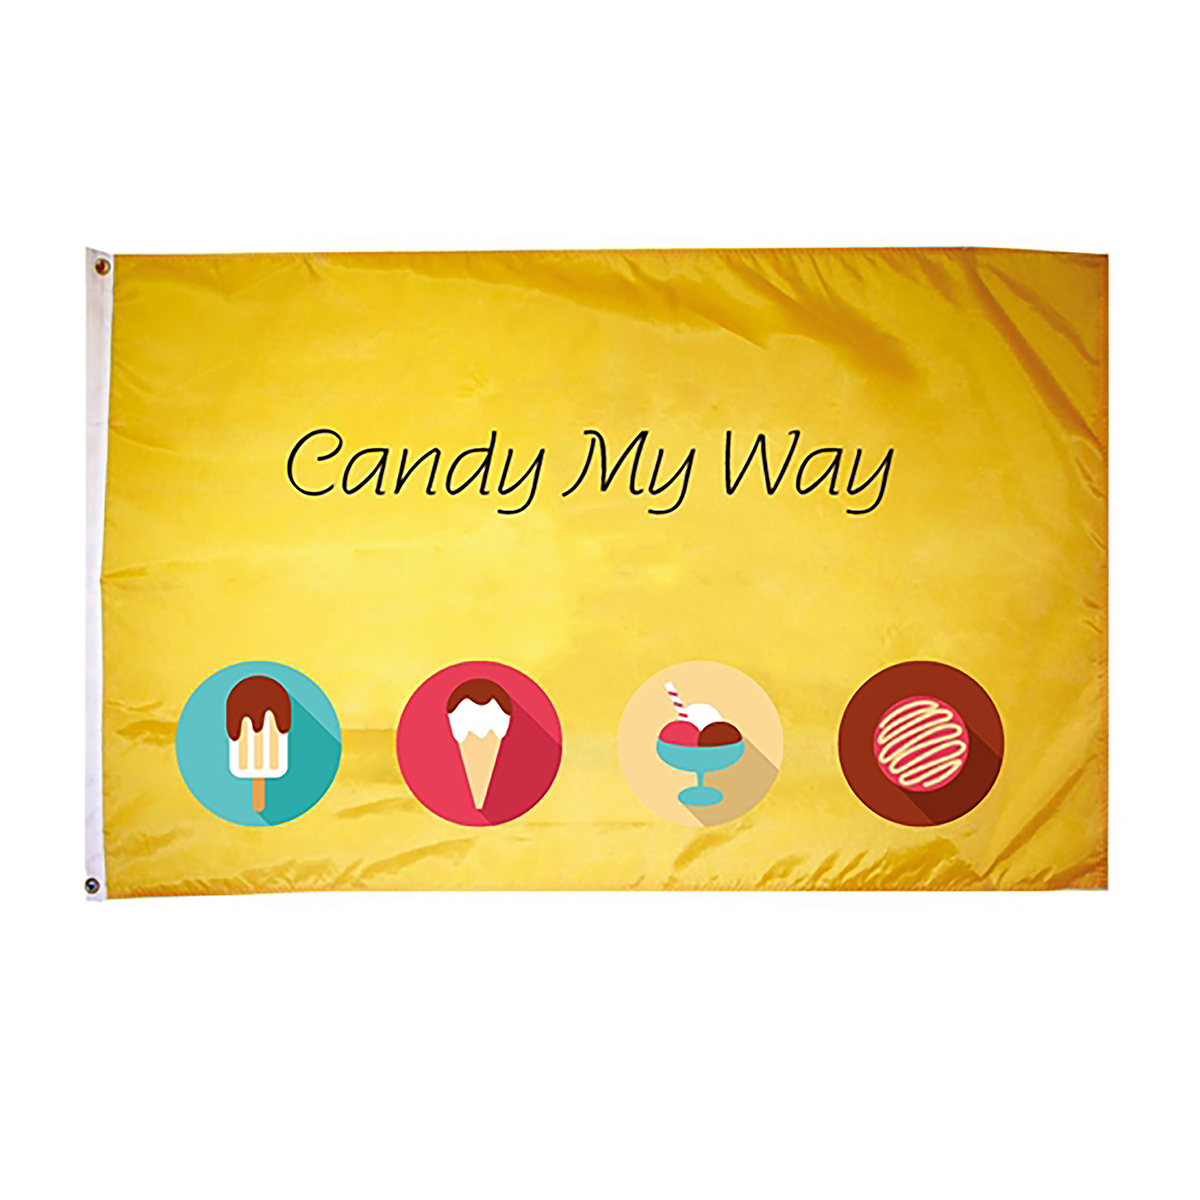 Single Sided Full Color Flag - 2' x 3'